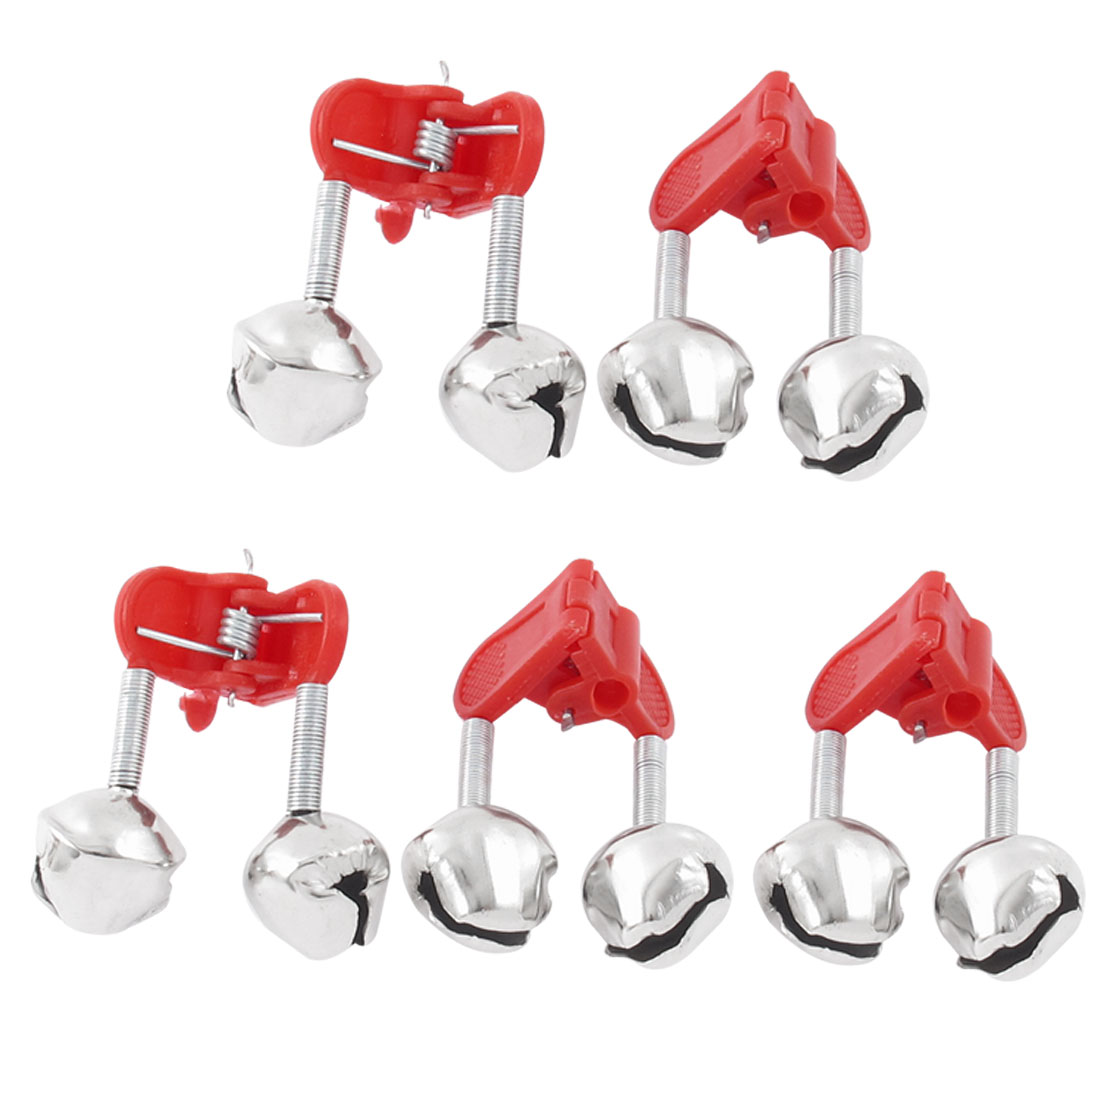 5pcs Fishing Rod Clamp Tip Fish Bite Lure Alarm Alert Clip Twin Bells Ring Red